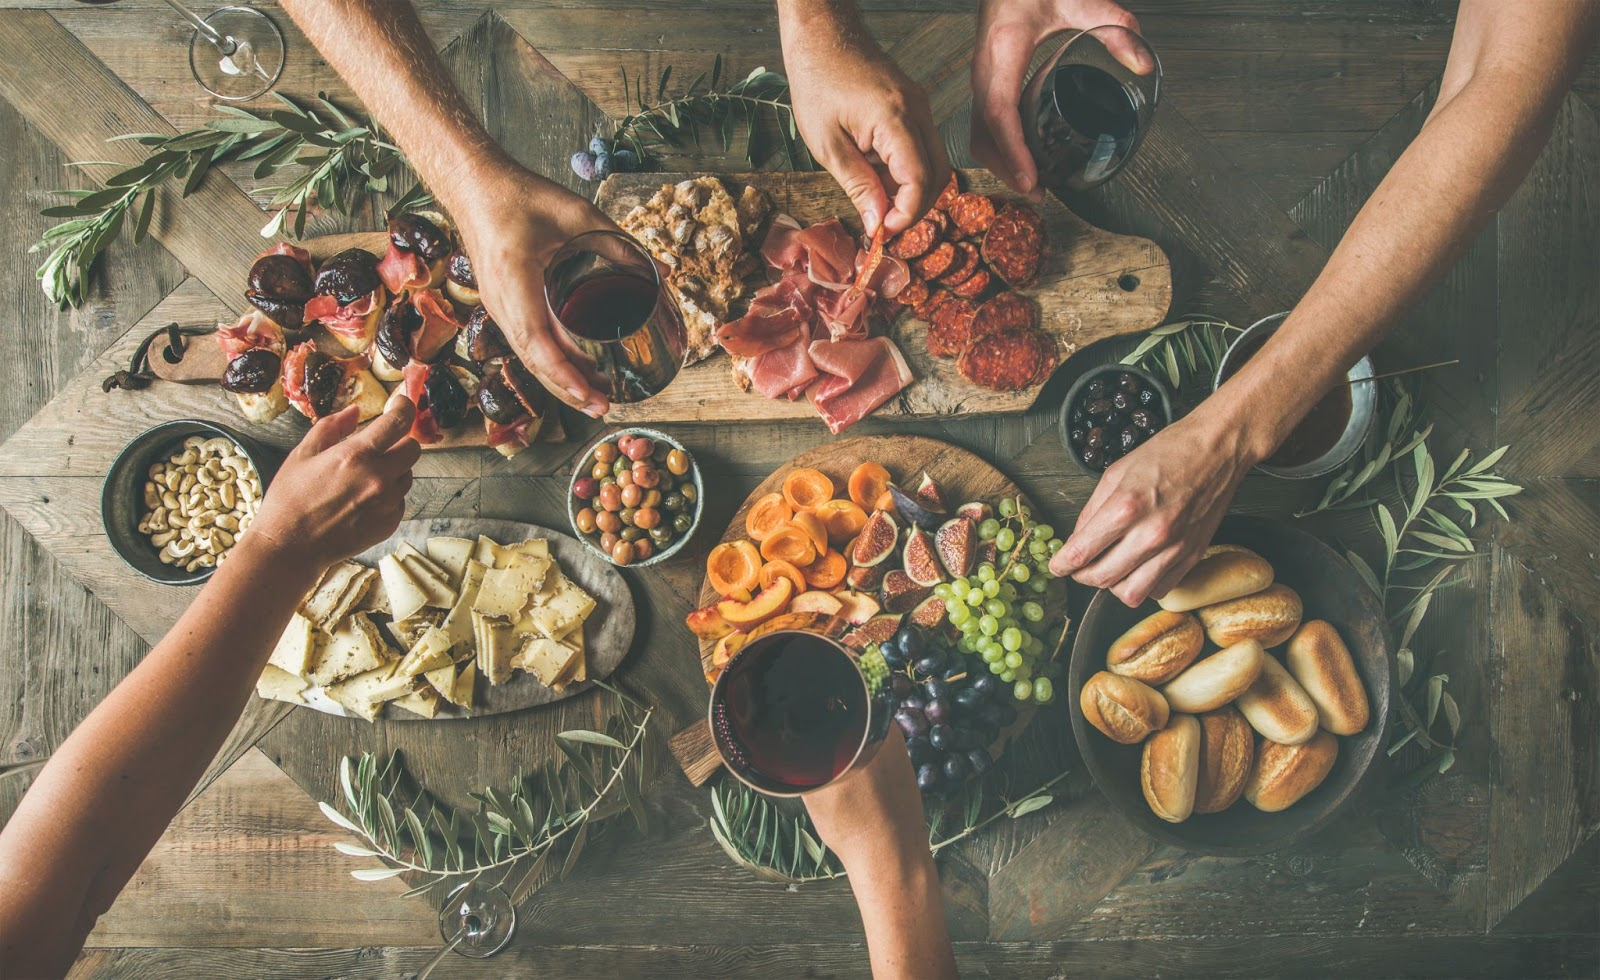 Charcuterie board with hands reaching to take food